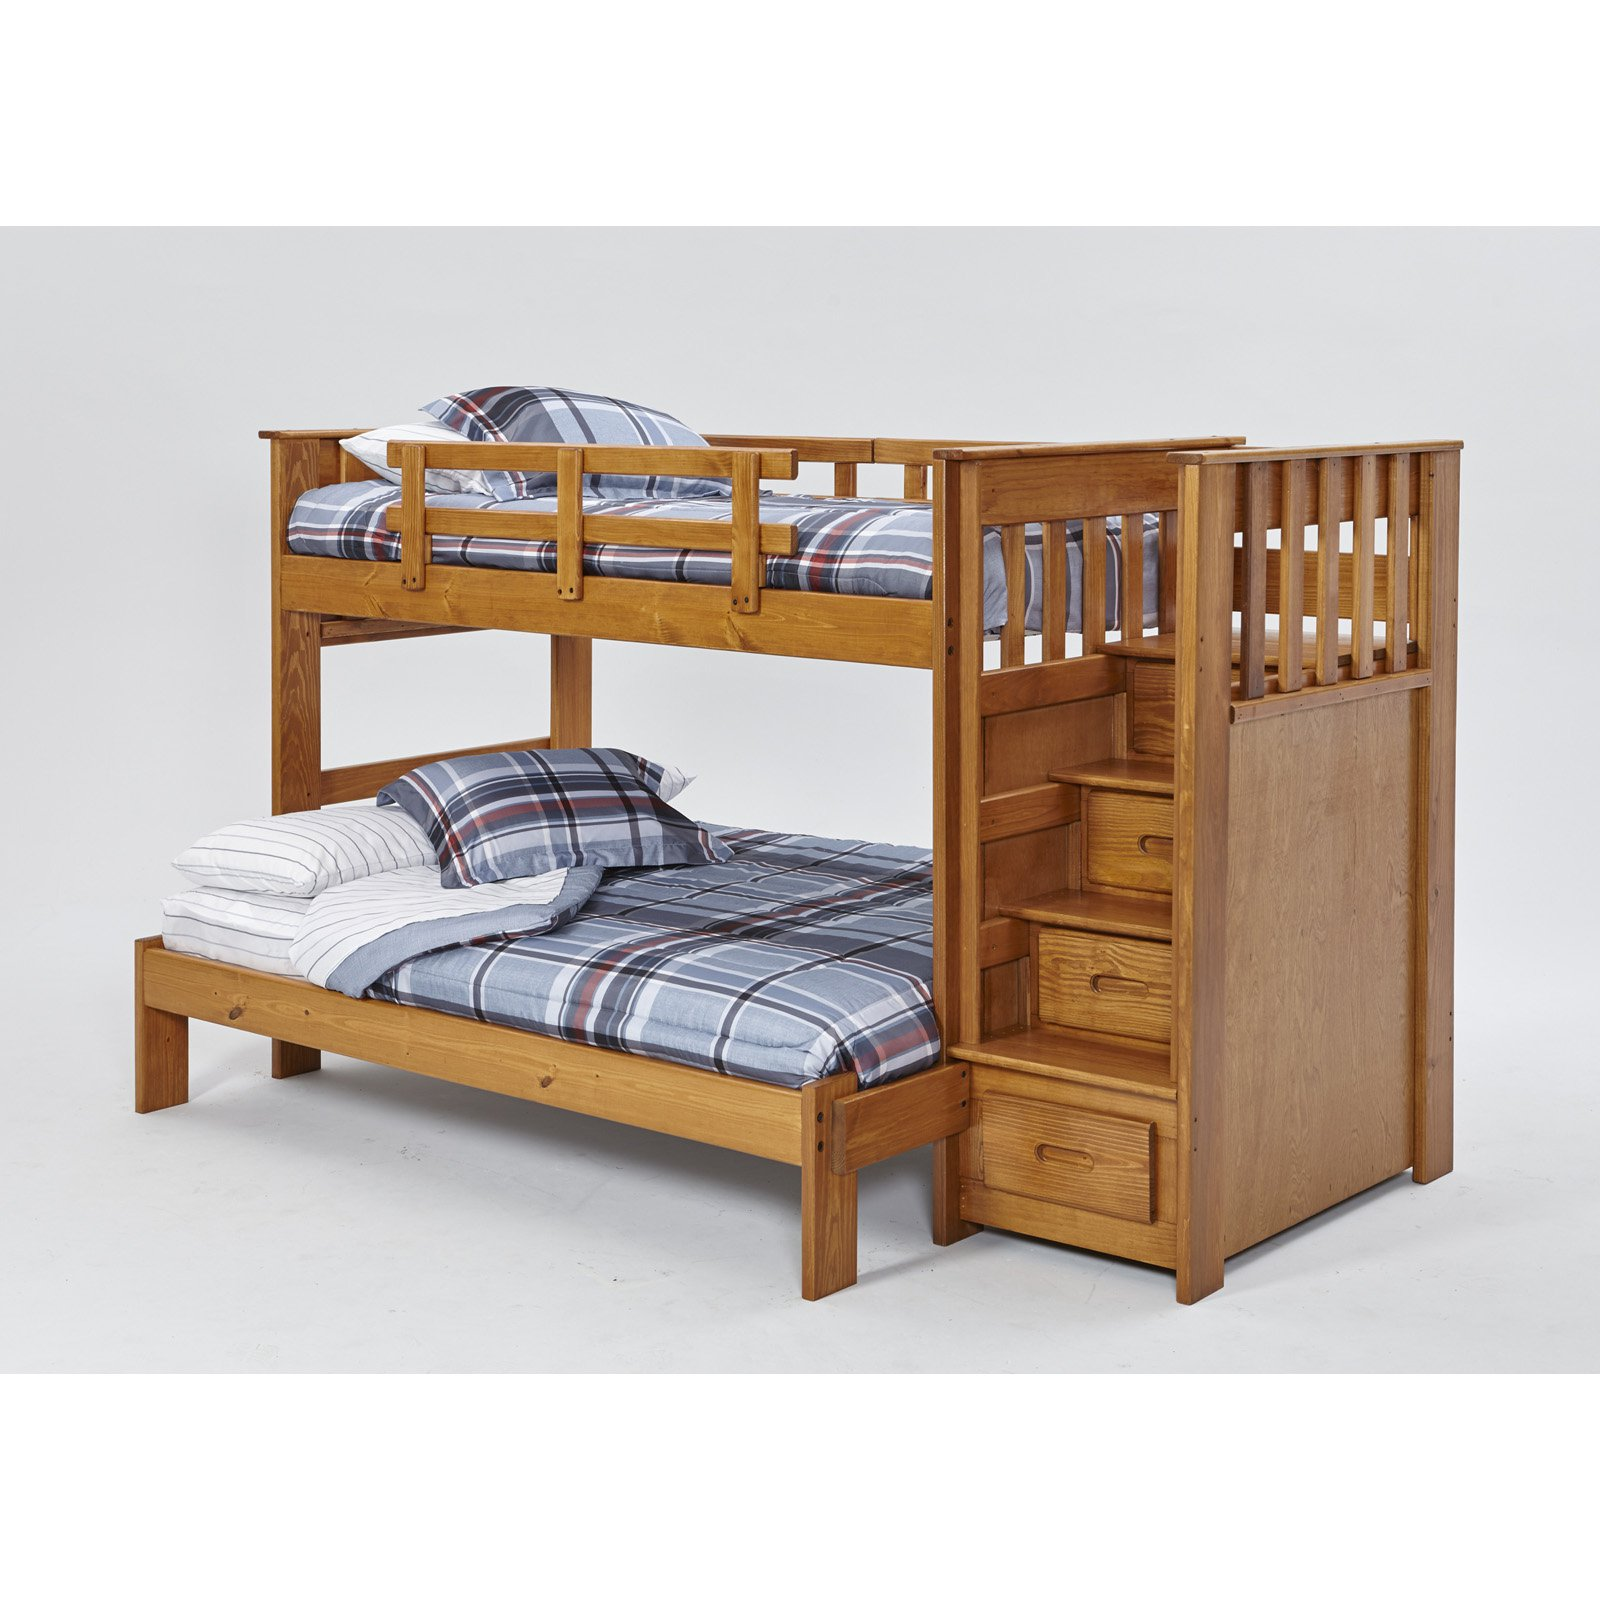 Woodcrest Heartland Twin Full Front Load Stairway Bunk Bed Walmart Com